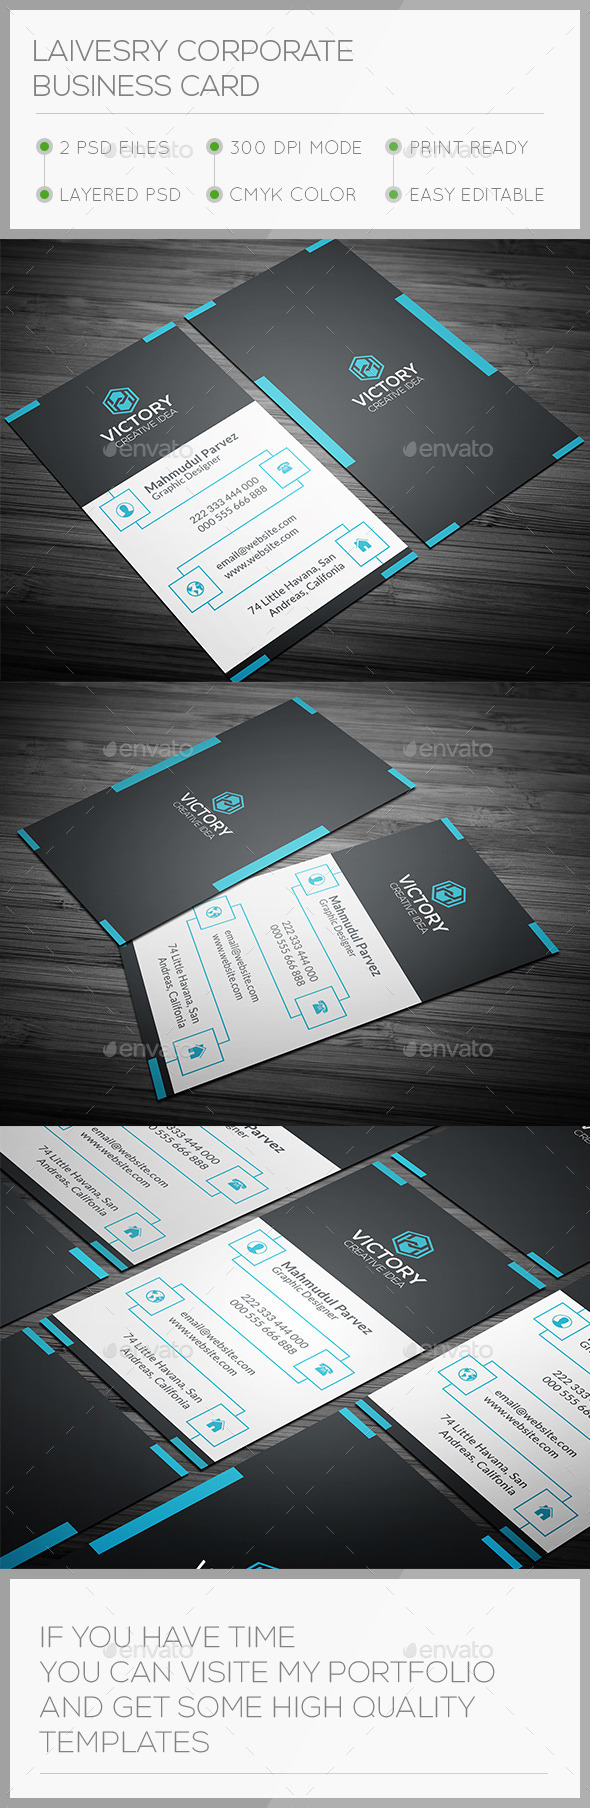 GraphicRiver Laivesry Corporate Business Card 11366202